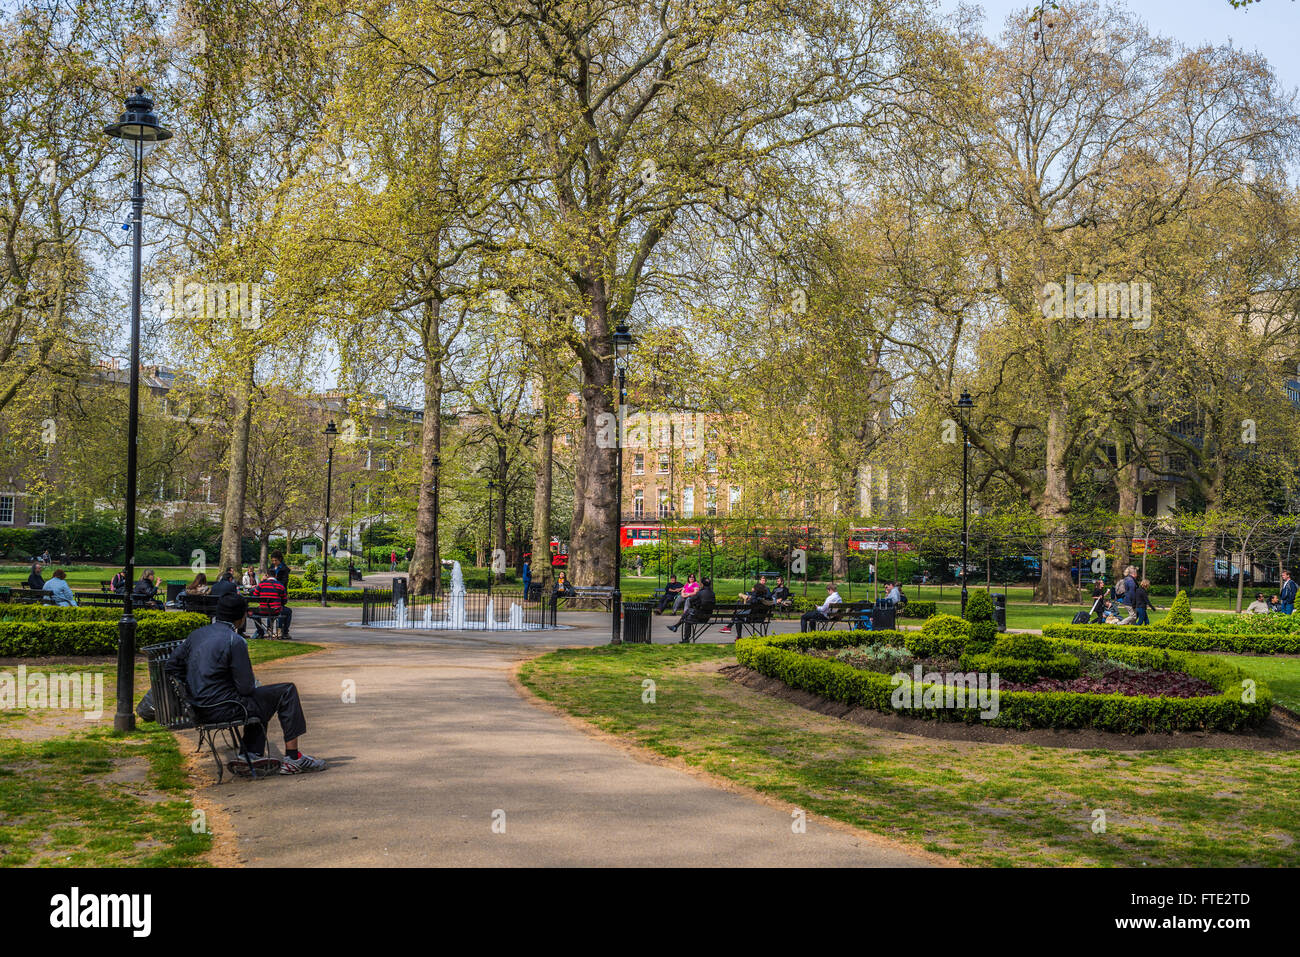 Russell Square Gardens, Bloomsbury, London - Stock Image